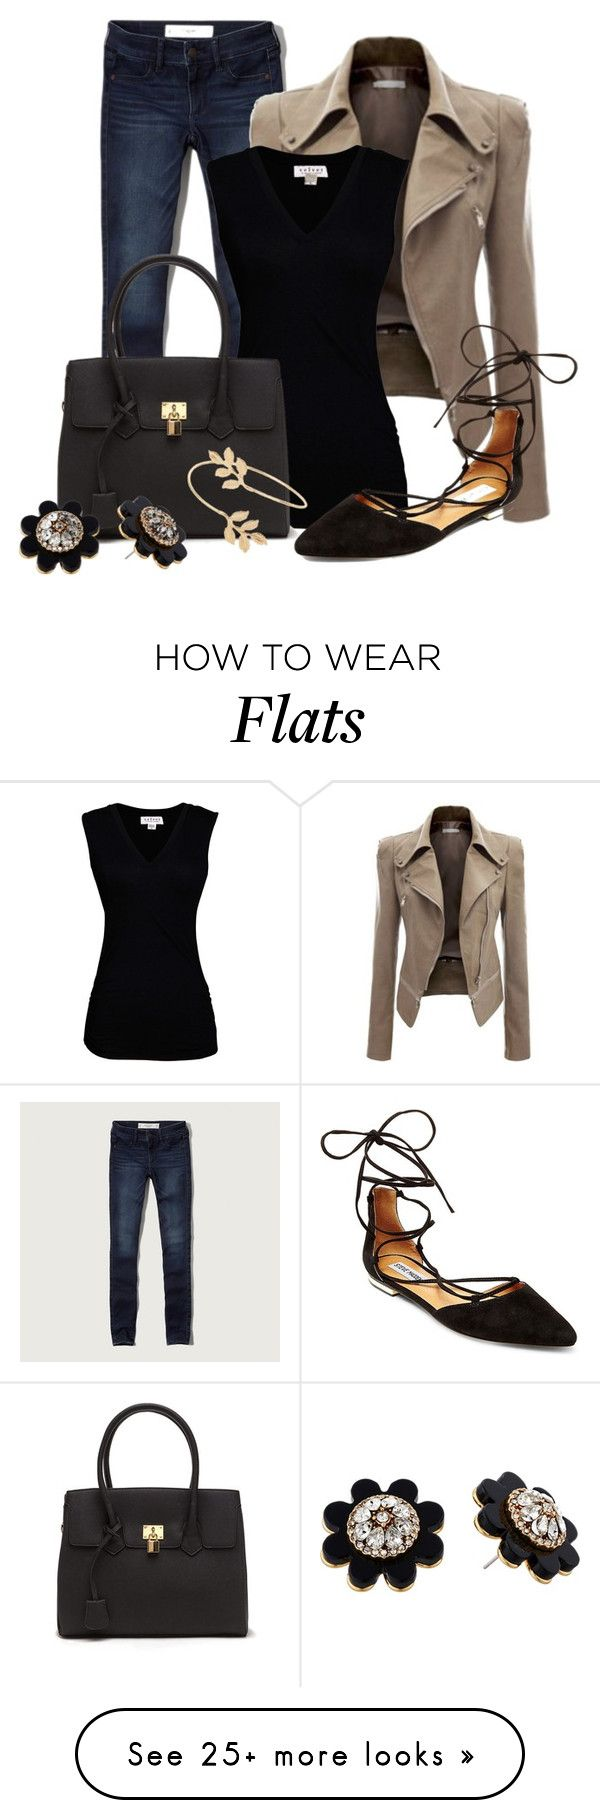 """Teacher Attire: Outfit 5"" by vanessa-bohlmann on Polyvore featuring Abercrombie & Fitch, Velvet by Graham & Spencer, Steve Madden, Miss Selfridge and Kate Spade"